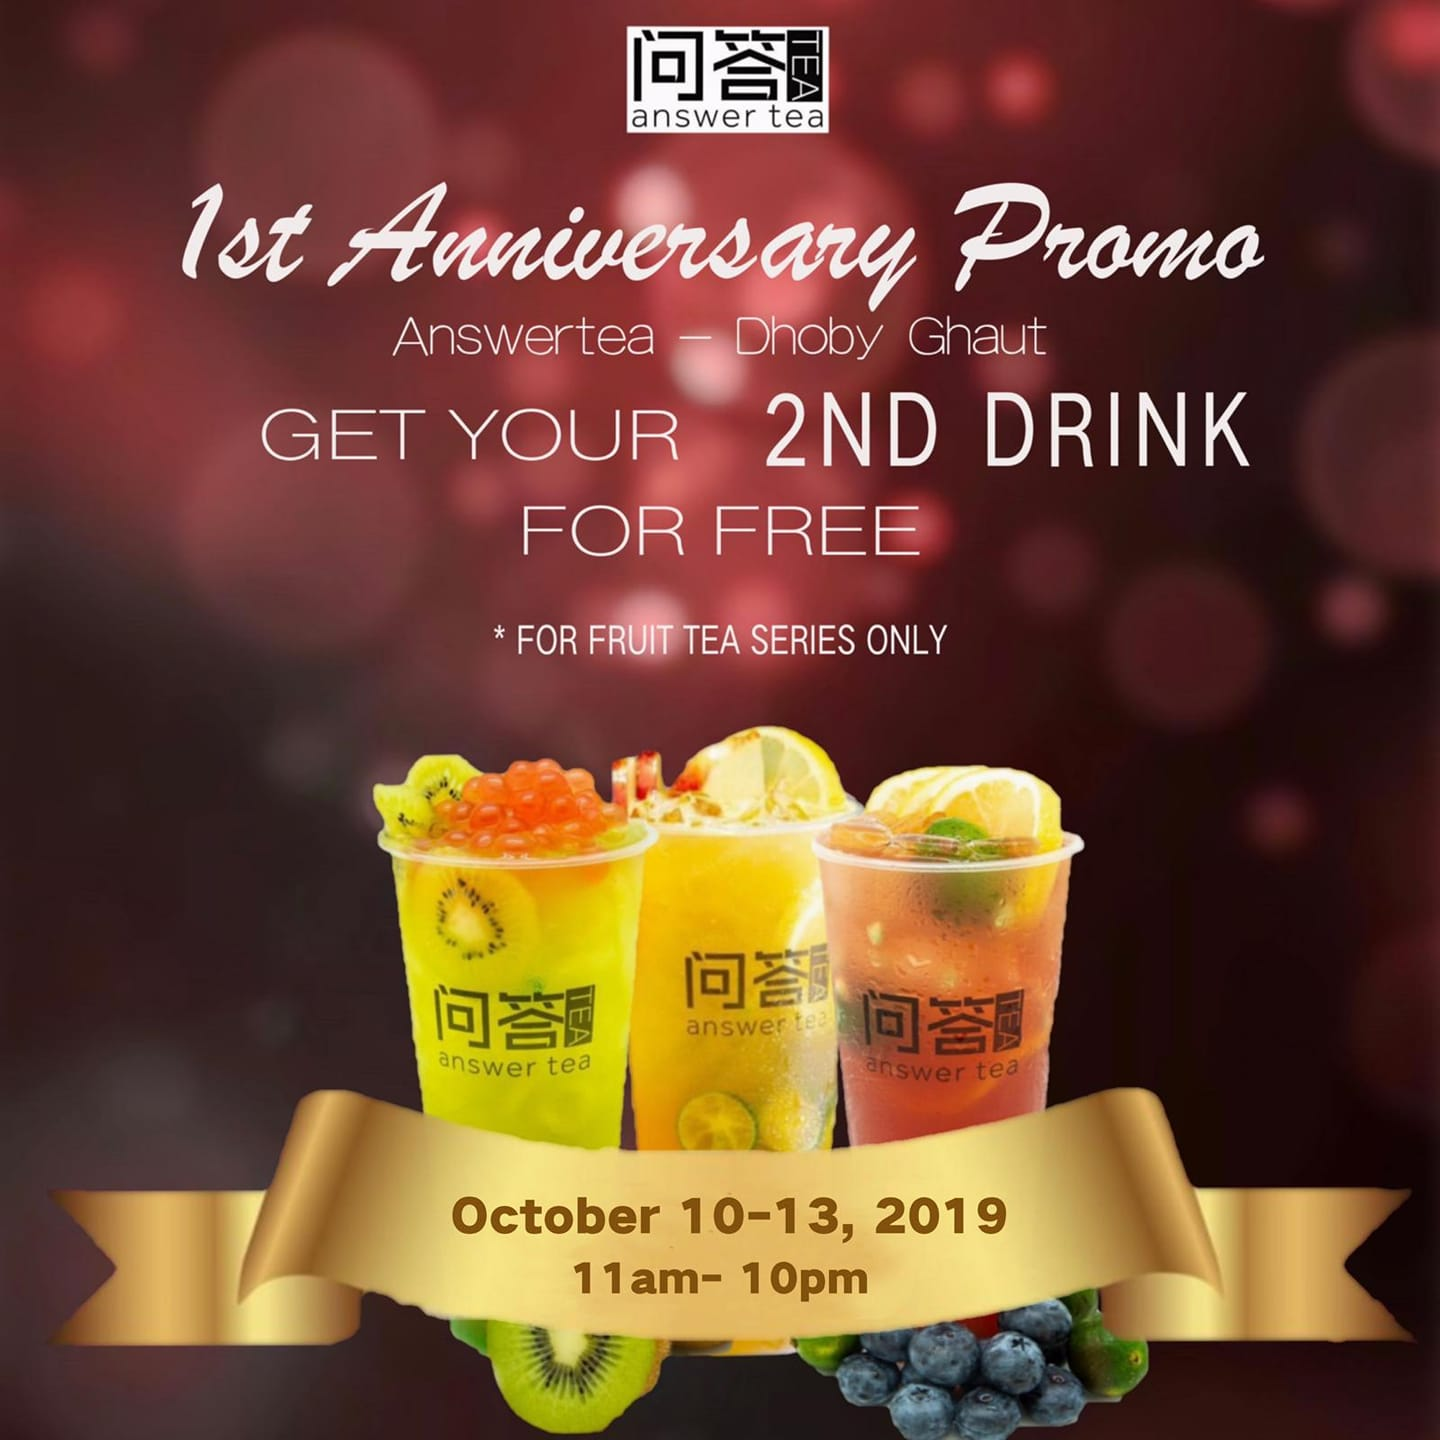 AnswerTea.sg 1st Anniversary 1-for-1 Fruit Tea Promotion 10-13 Oct 2019 | Why Not Deals & Promotions